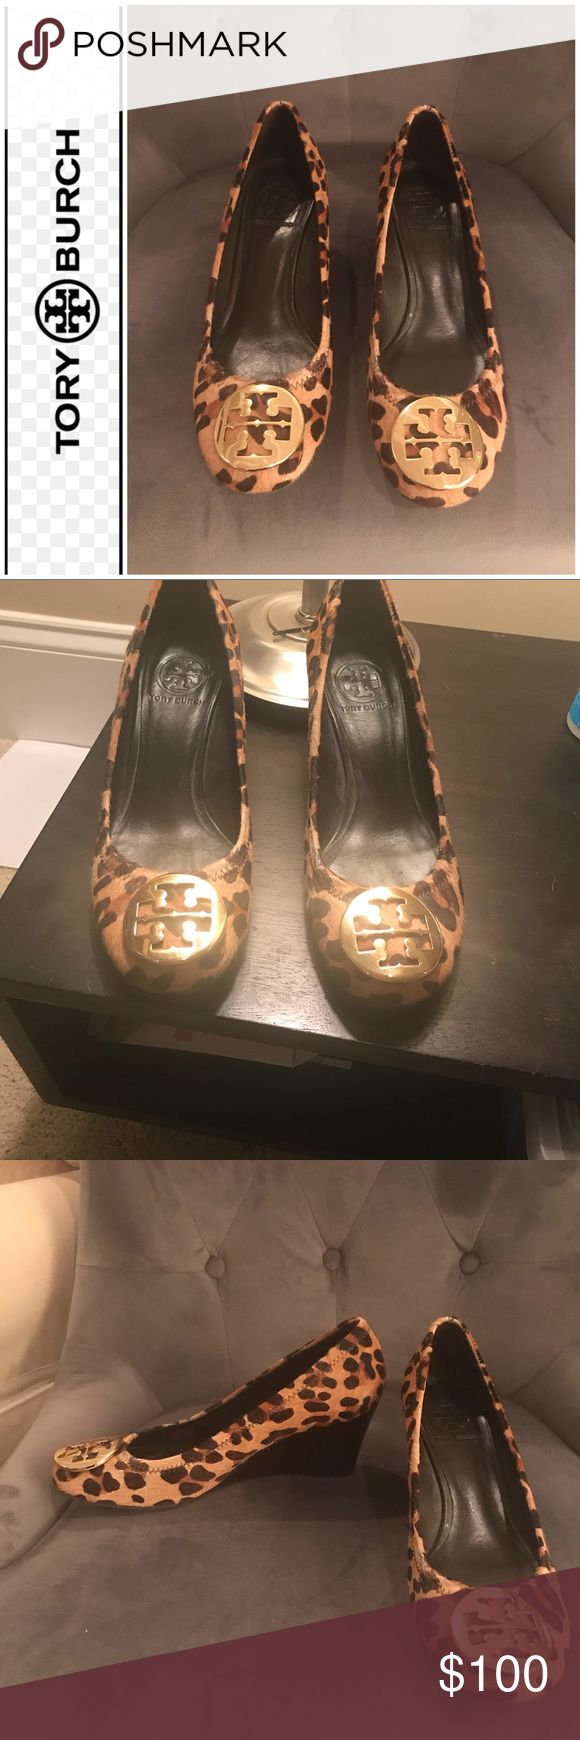 """Authentic Tory Burch Leopard wedges Authentic Tory Burch calf hair leopard print wedges. Size 8. Gold hardware. Some scratches on hardware. Some spots of shoes have wear (see pics) where some of calf hair has been rubbed off due to wear. Wedges are approximately 2.5"""" and are a dark brown. These shoes are gorgeous. Tory Burch Shoes Wedges"""